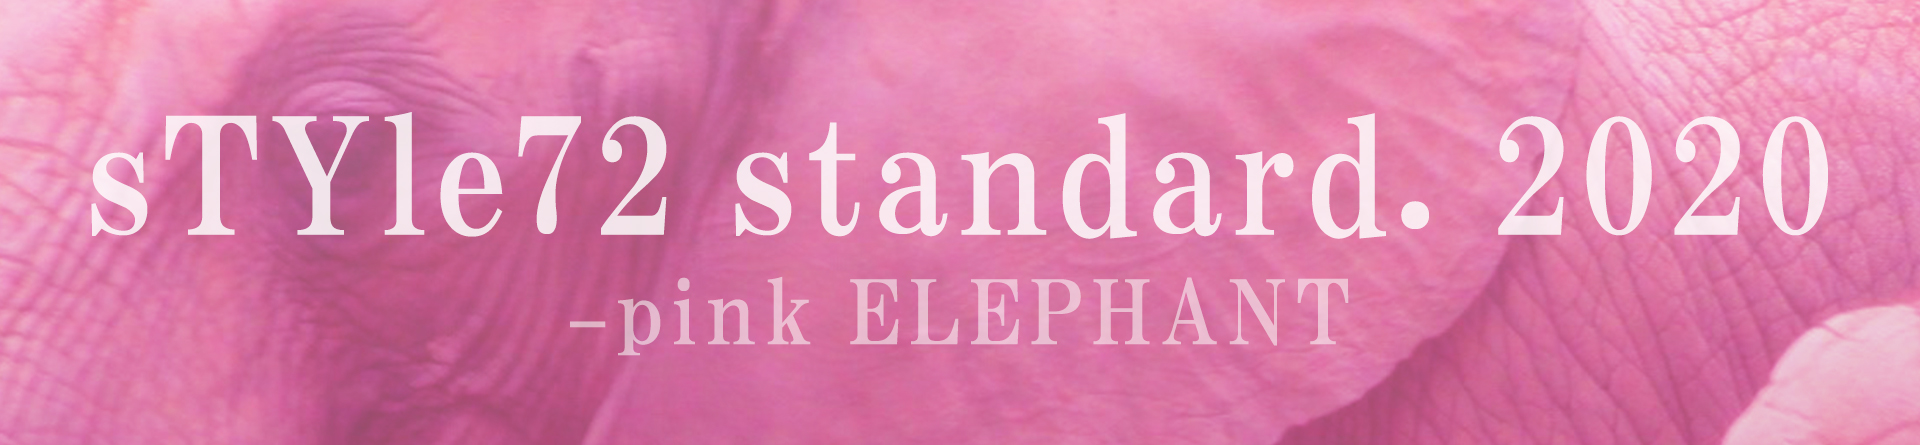 sTYle72 standard. 2020 -pink ELEPHANT